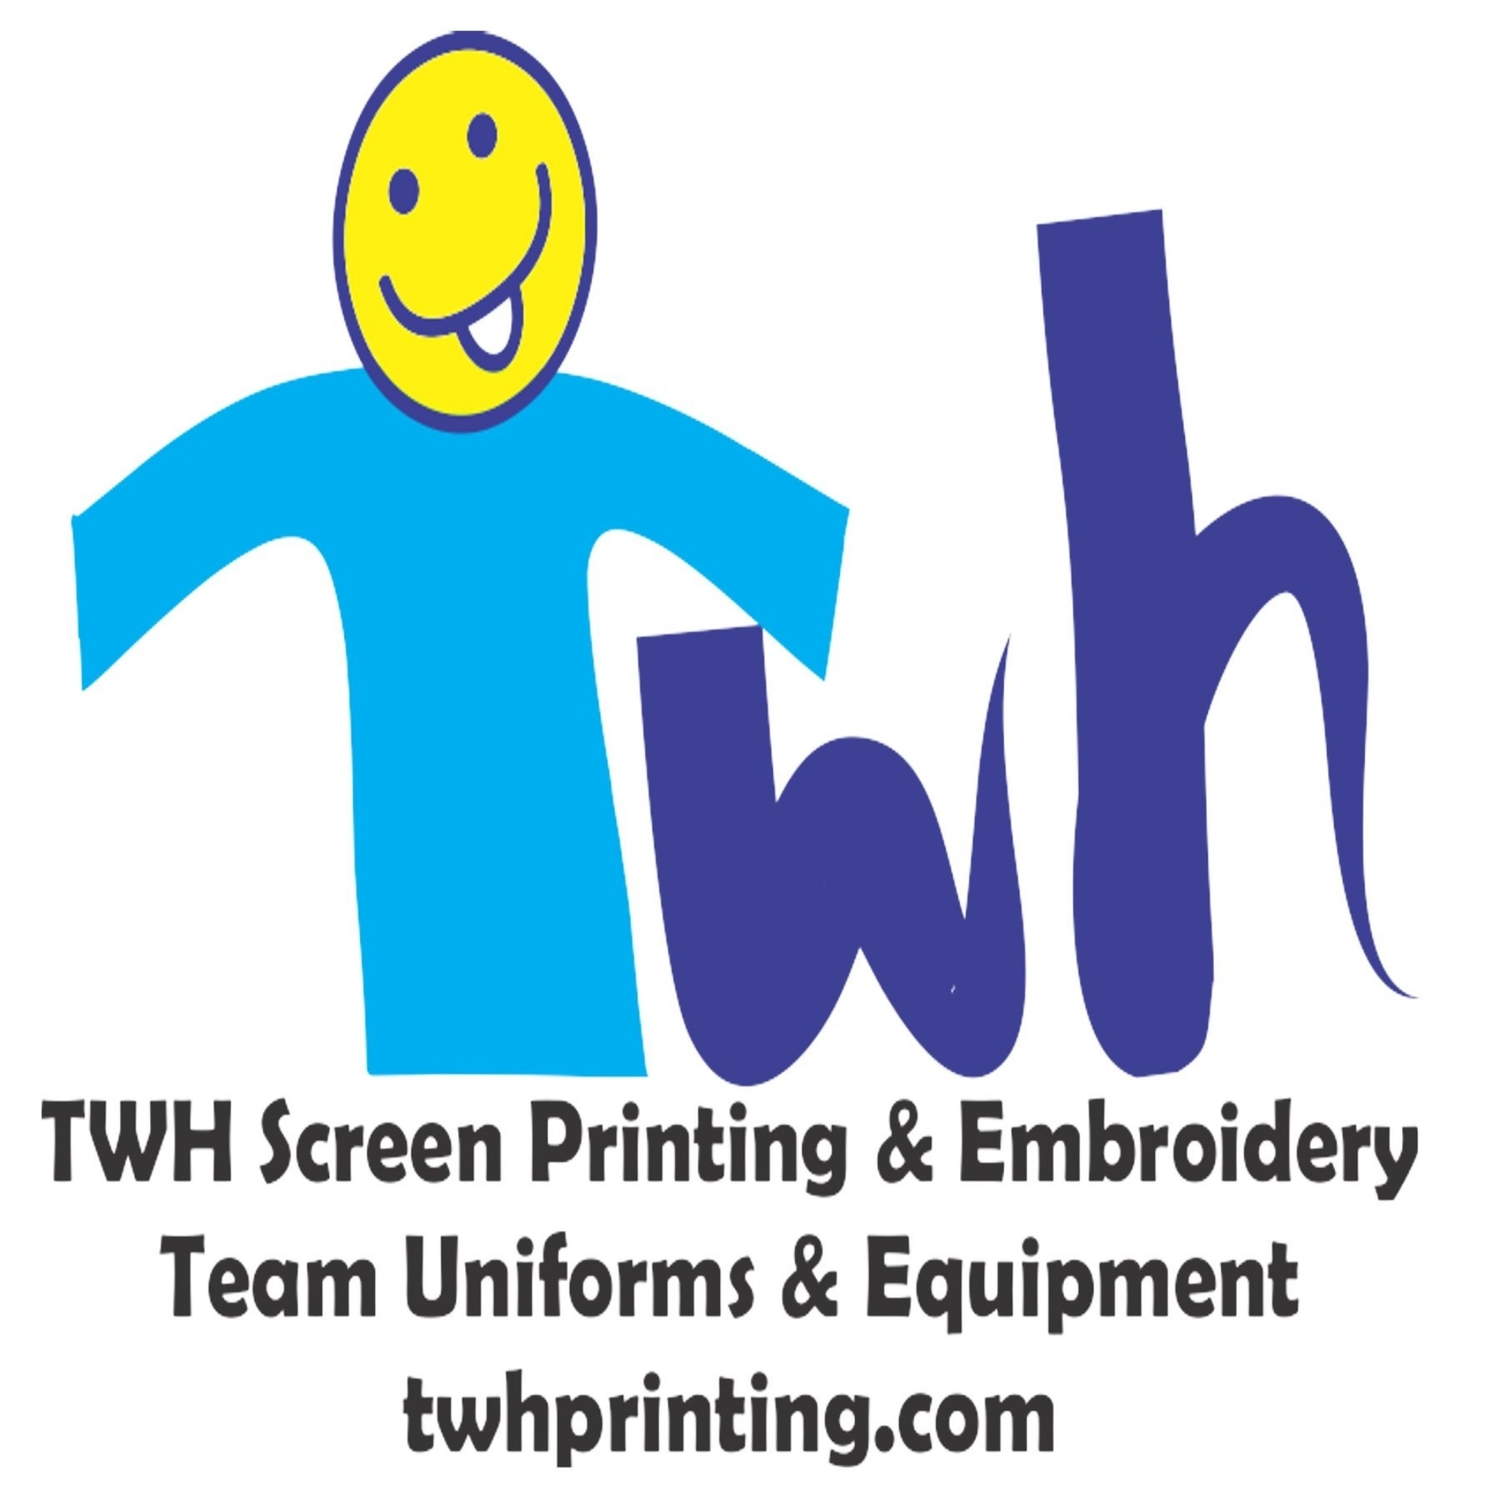 TWH SCREENPRINTING & EMBROIDERY NILES IL ILLINOIS 60714